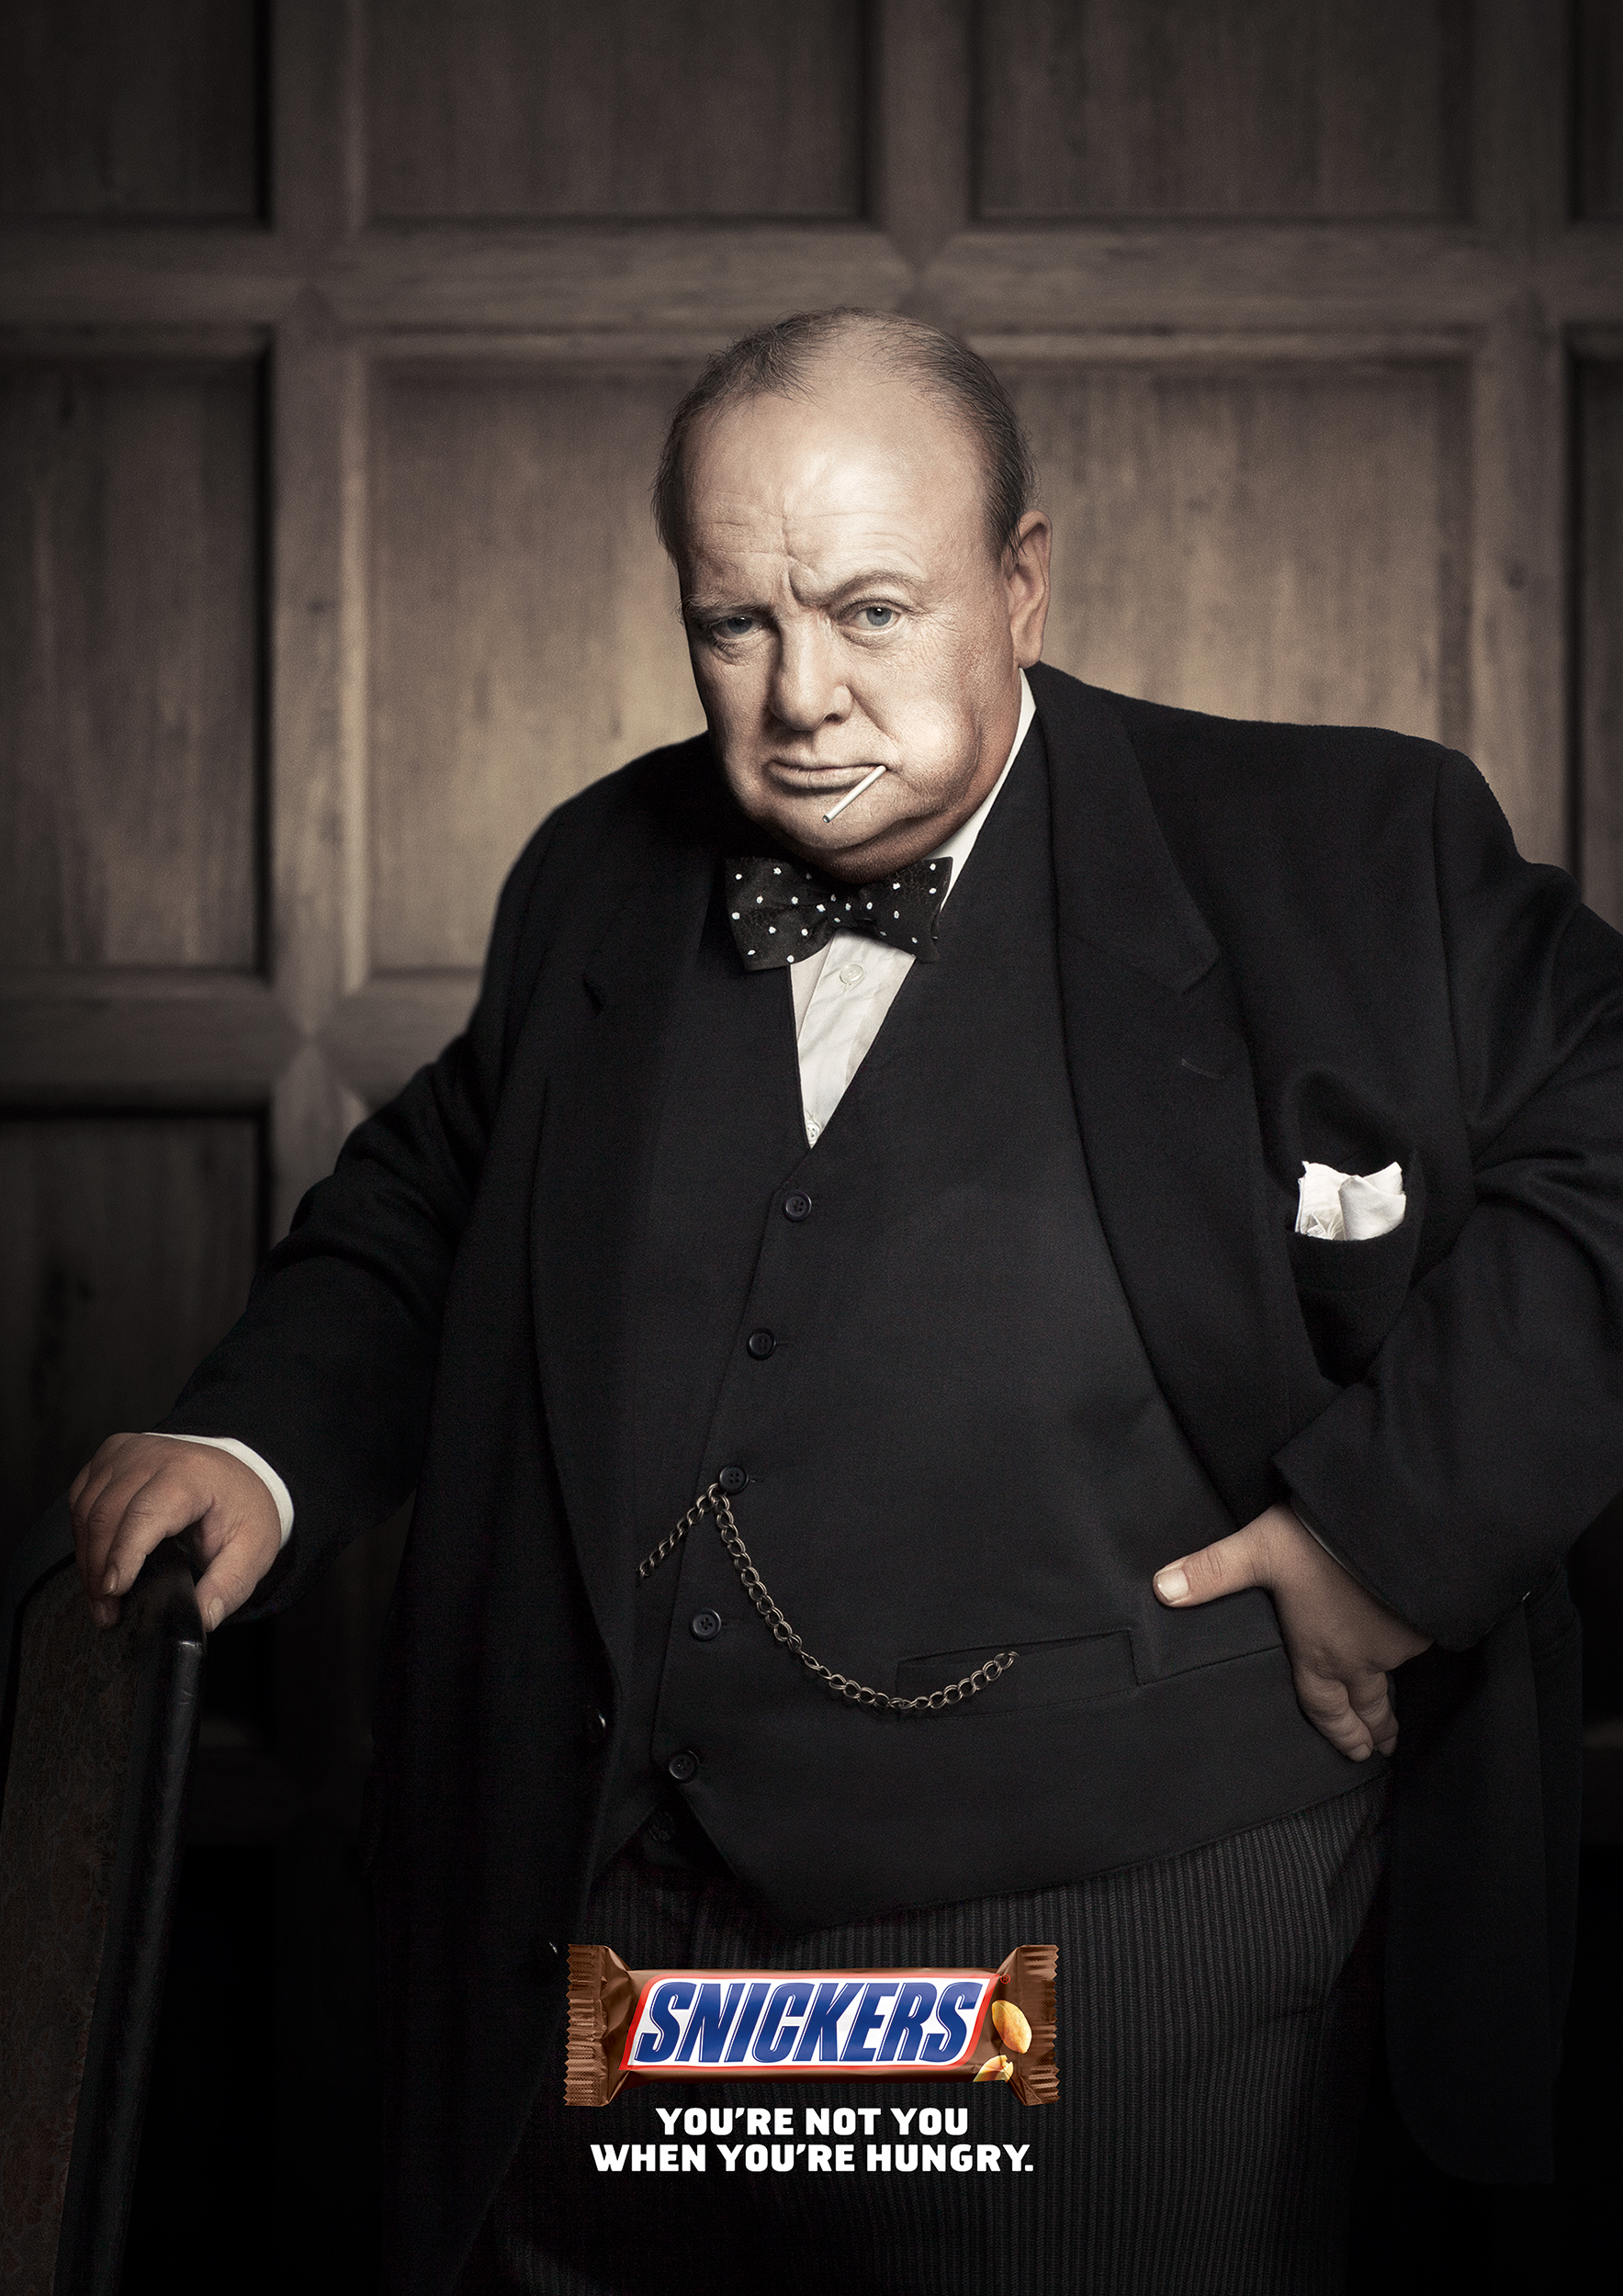 You're not you: British Edition. Churchill